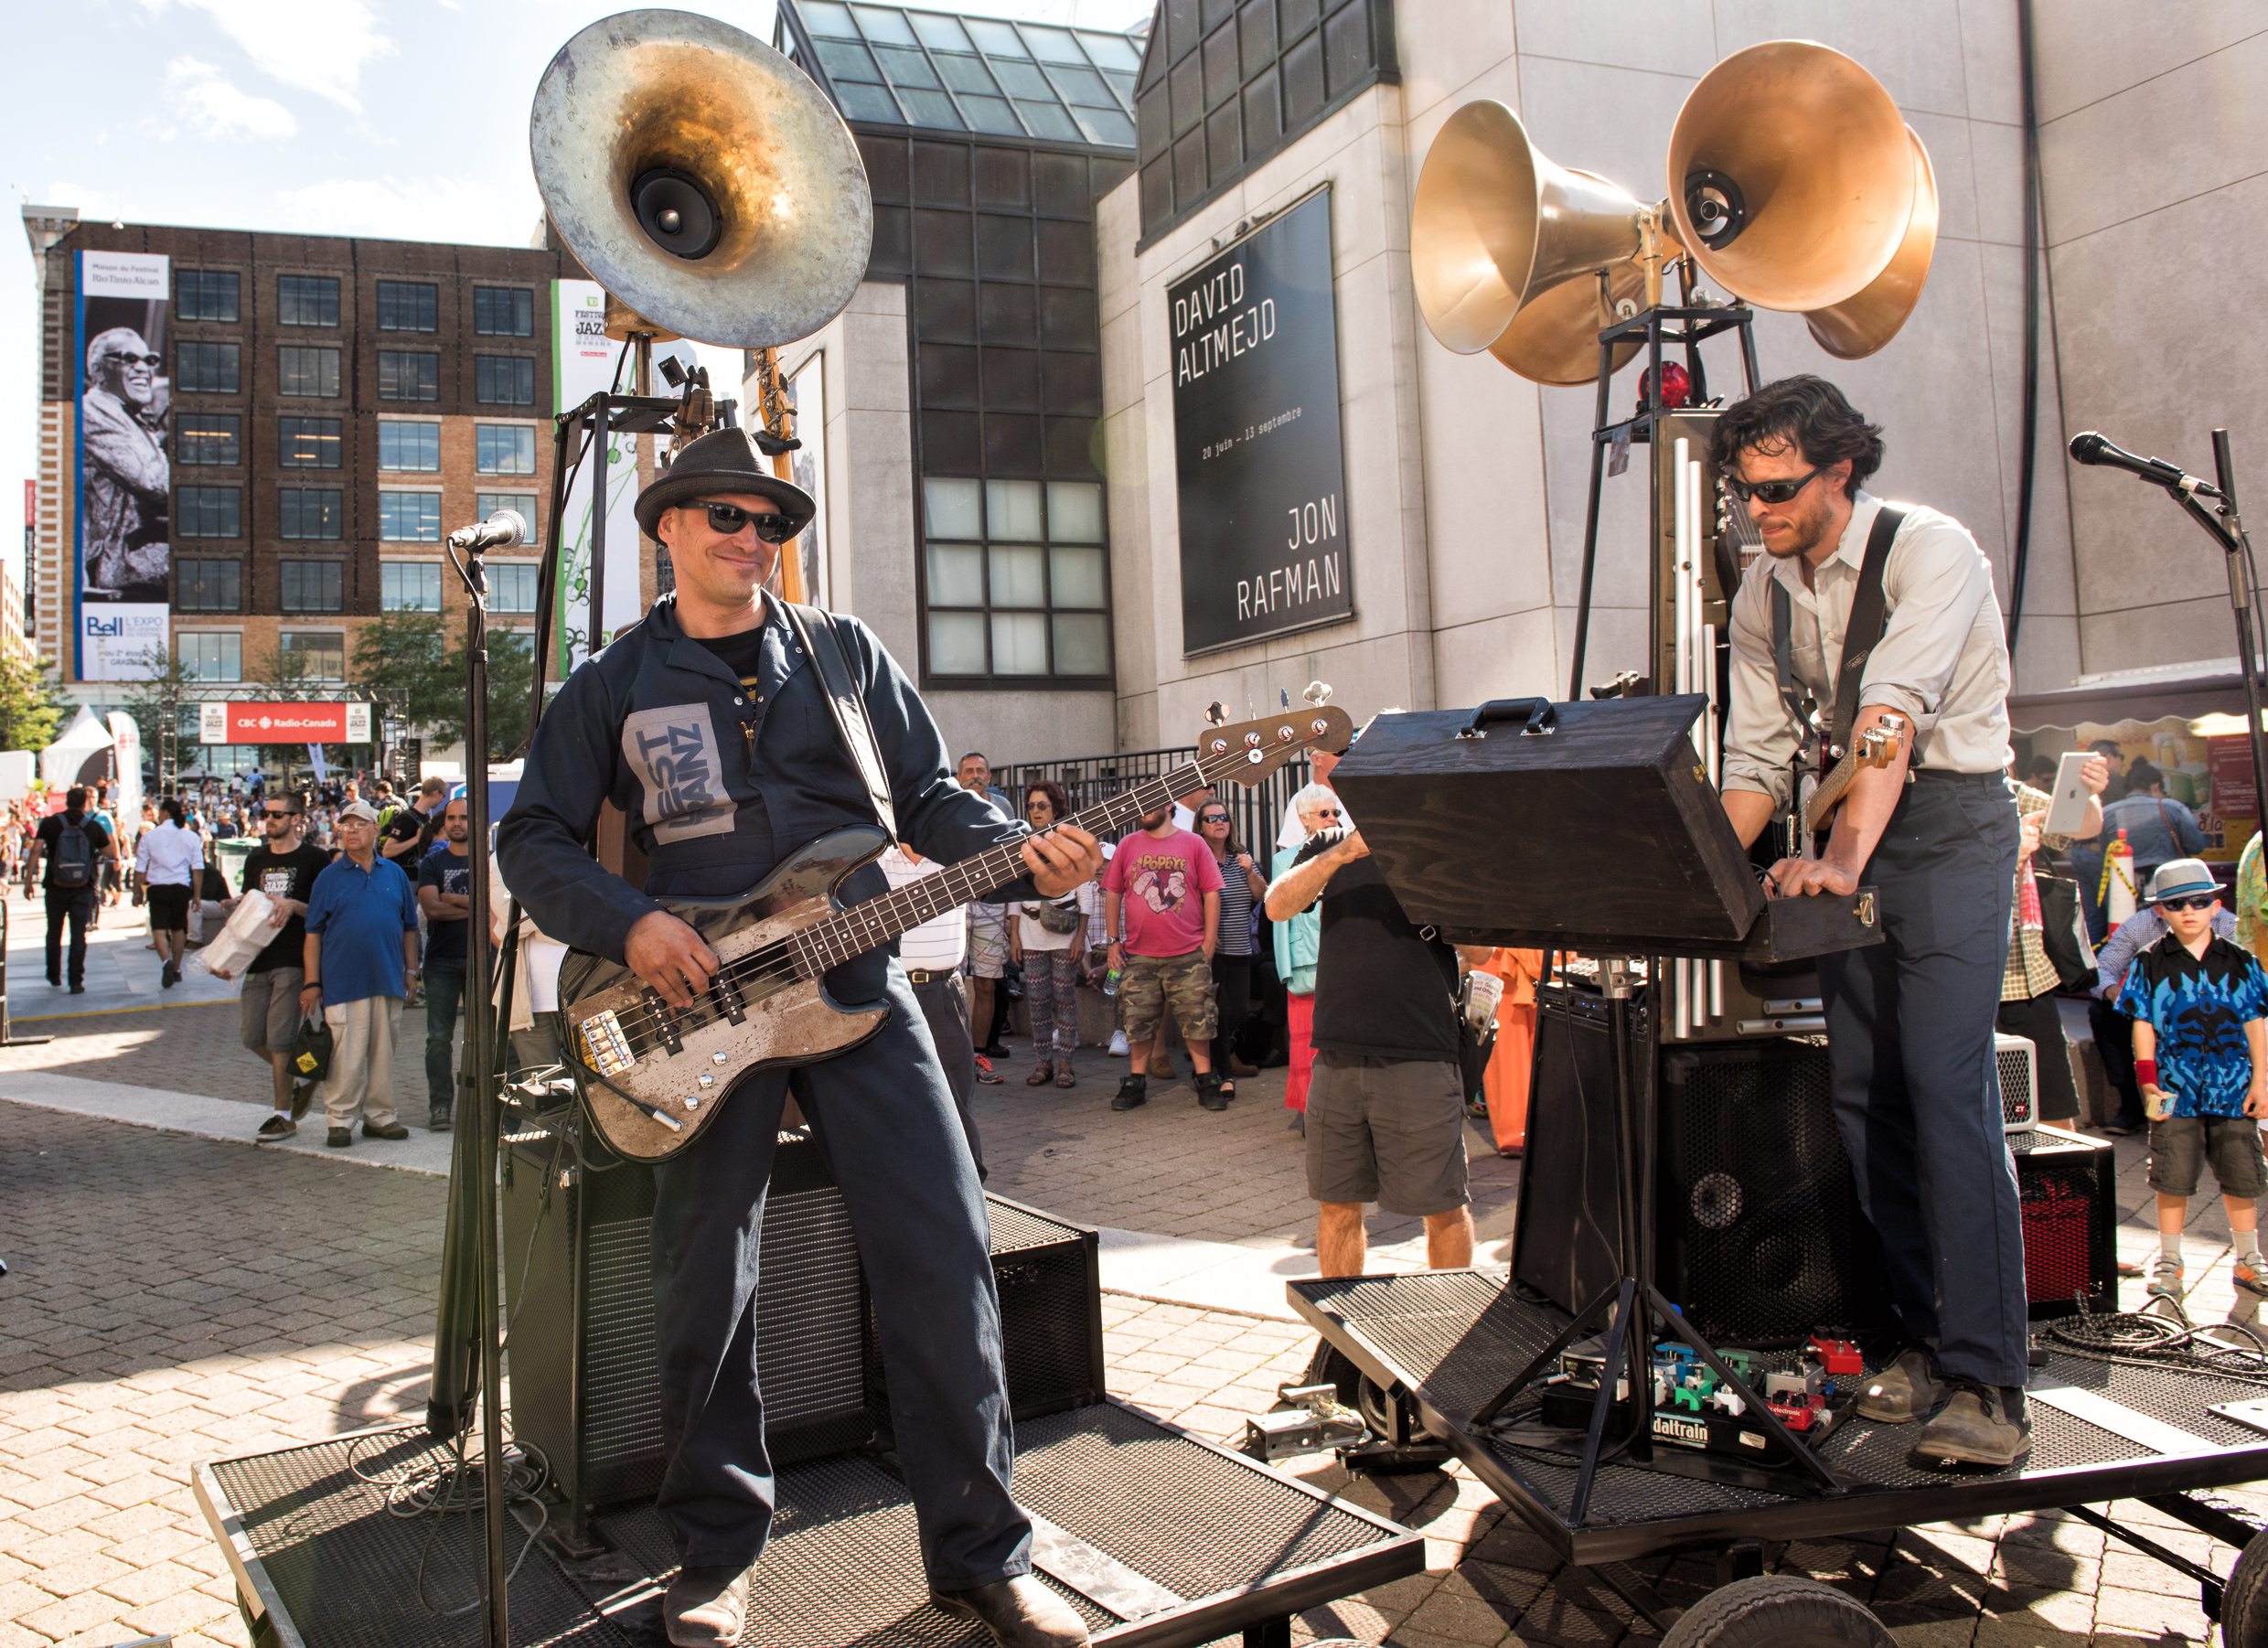 Erik West Millette and Olaf Gundel with West Trainz at the Montreal International Jazz Festival 2015